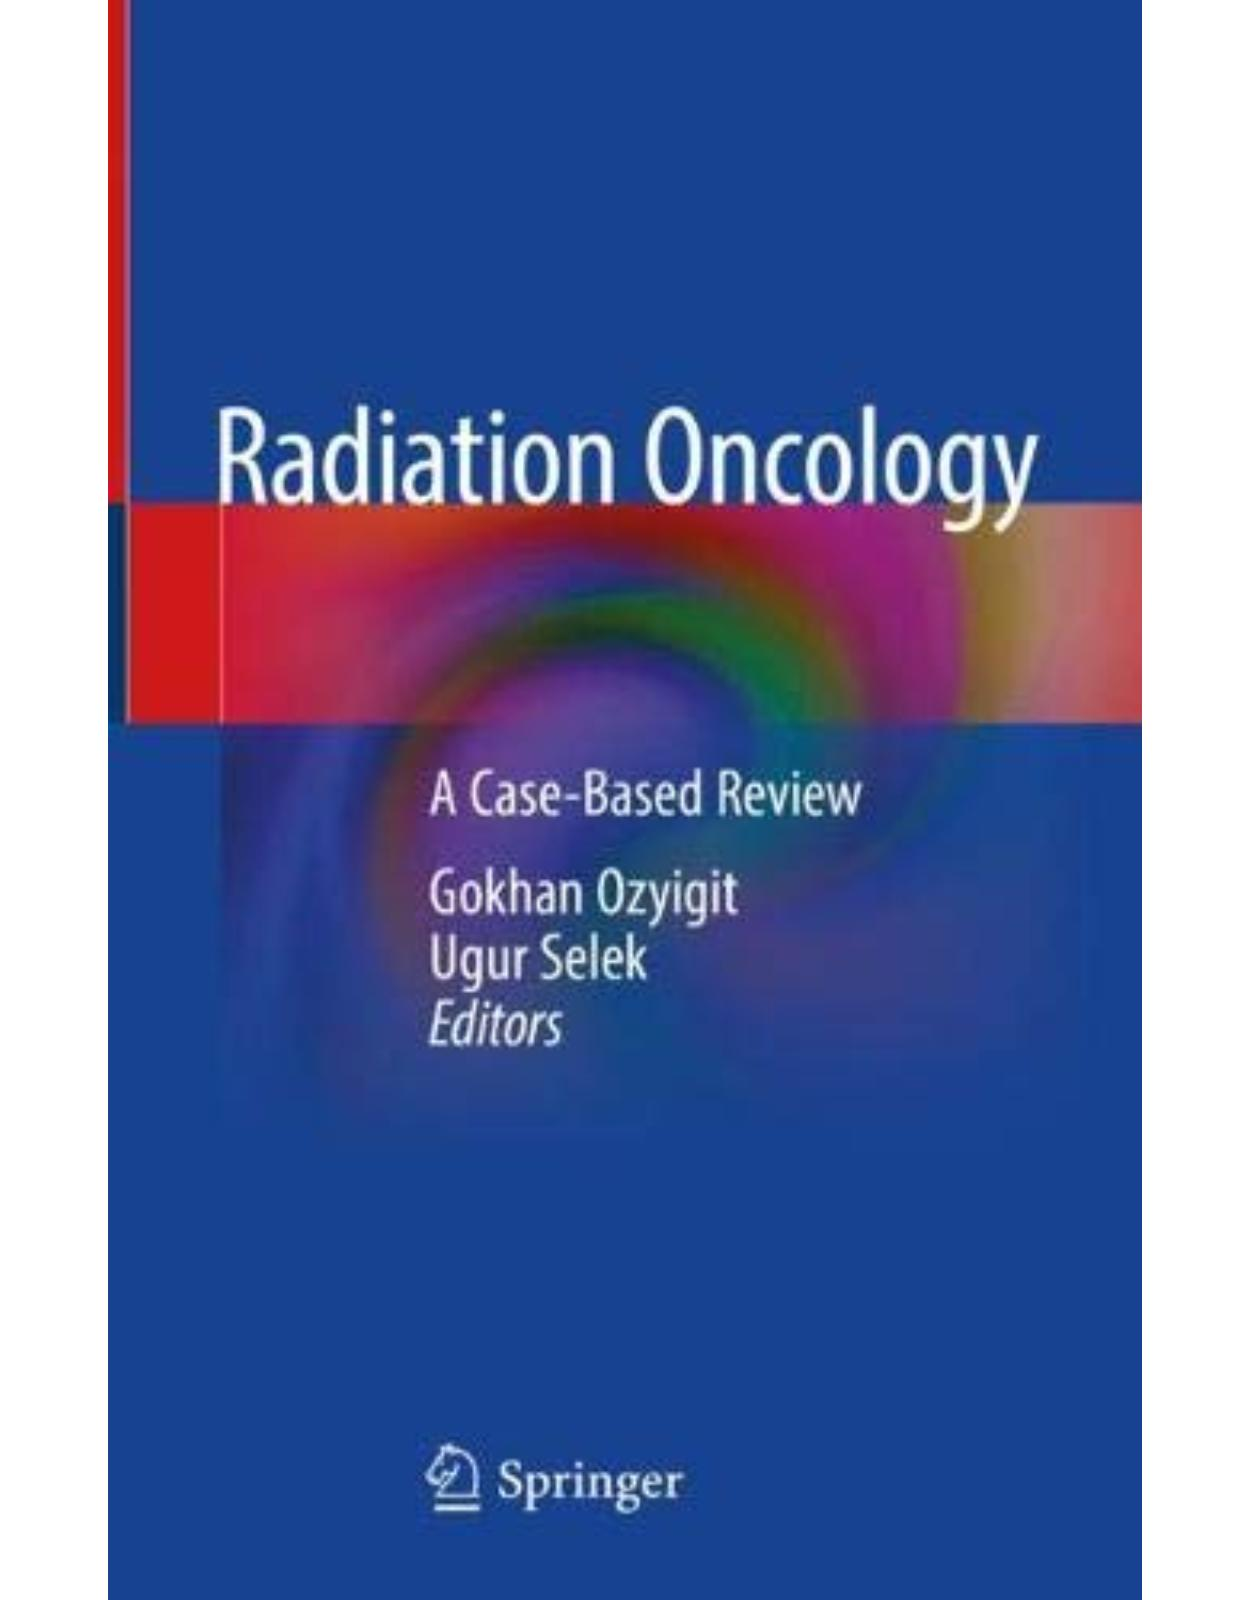 Radiation Oncology: A Case-Based Review